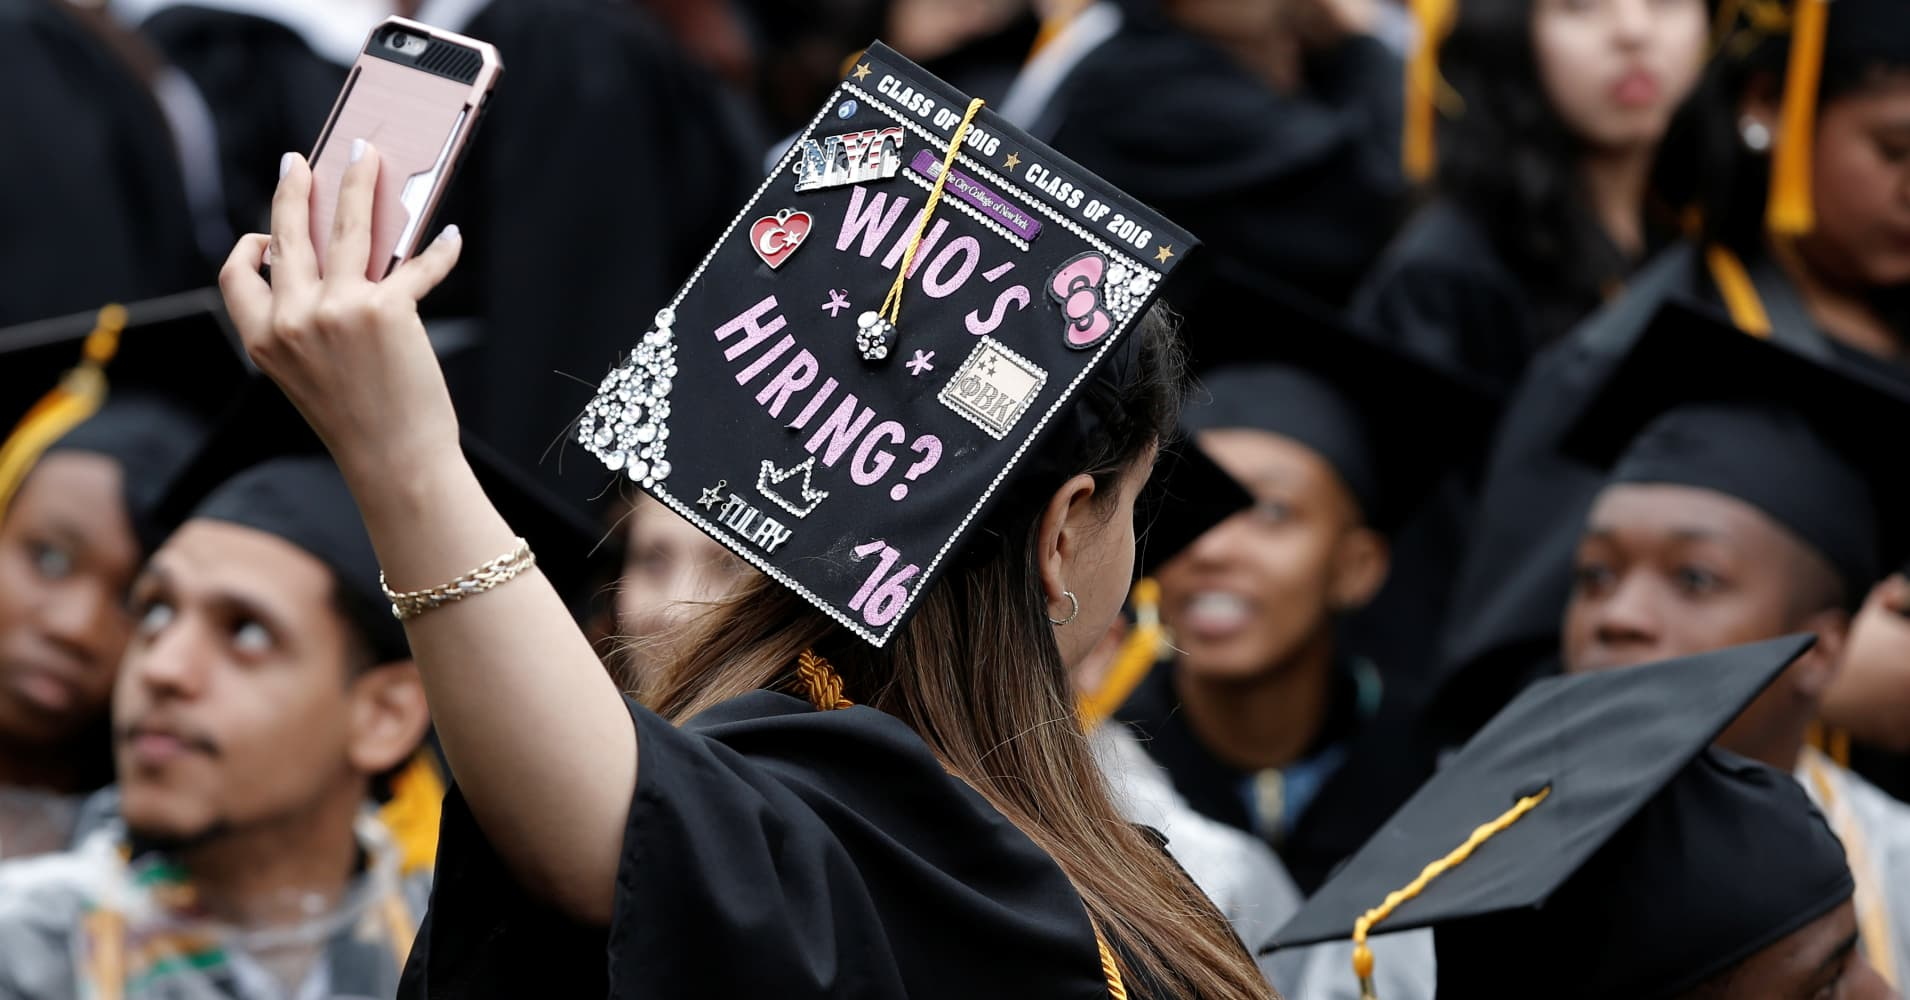 A City College of New York graduate takes a selfie during the commencement ceremony.